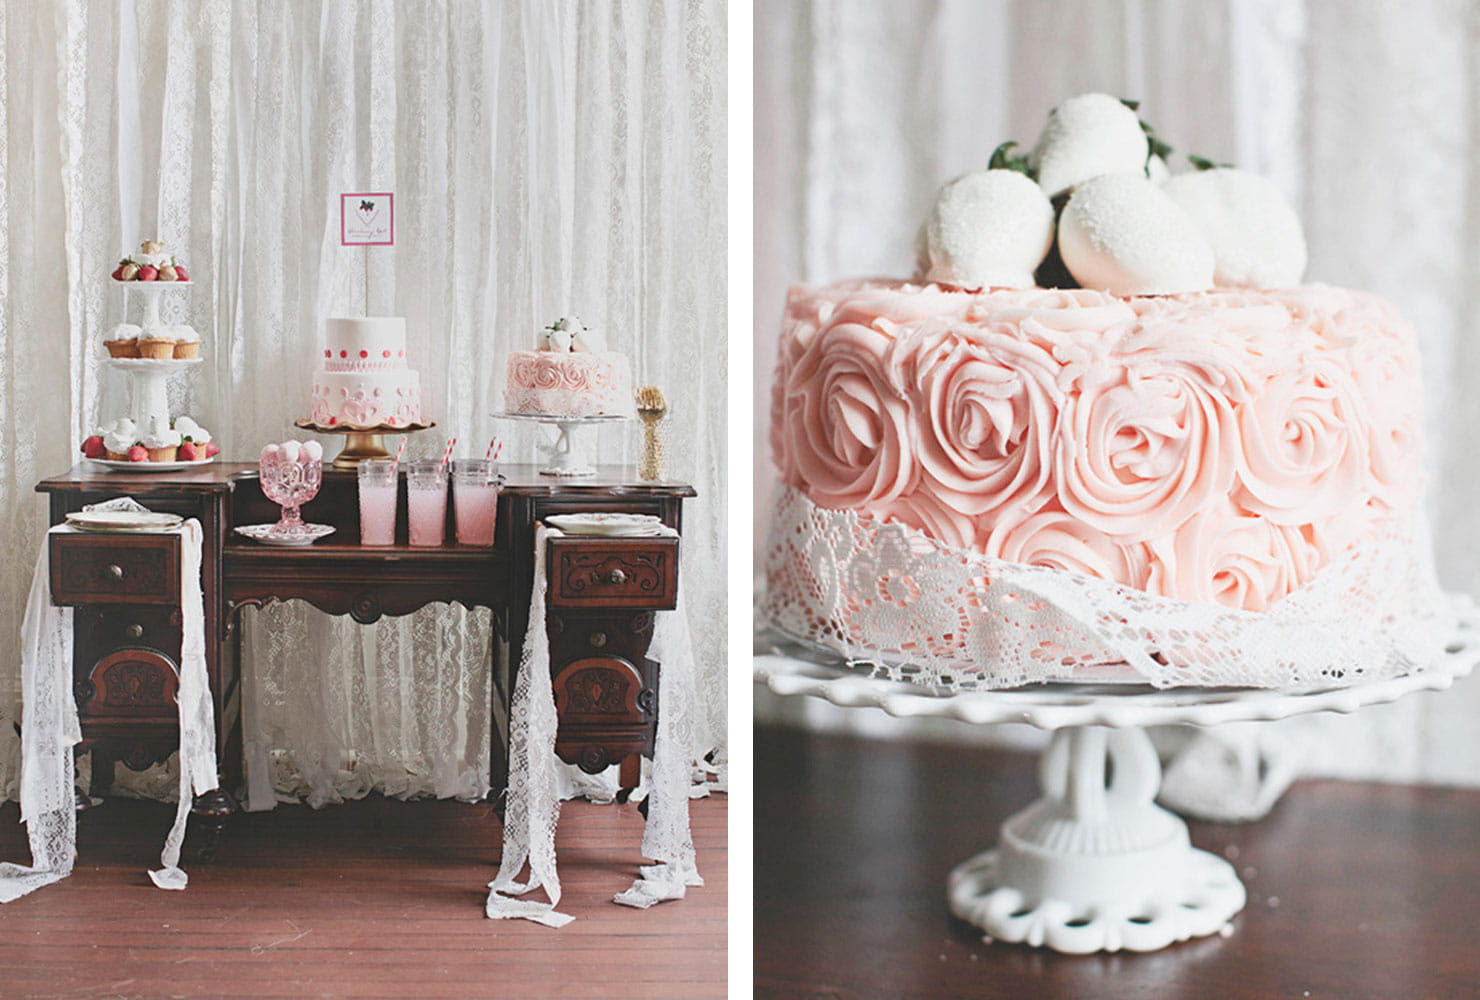 Dark wood table with pink and white desserts and drinks